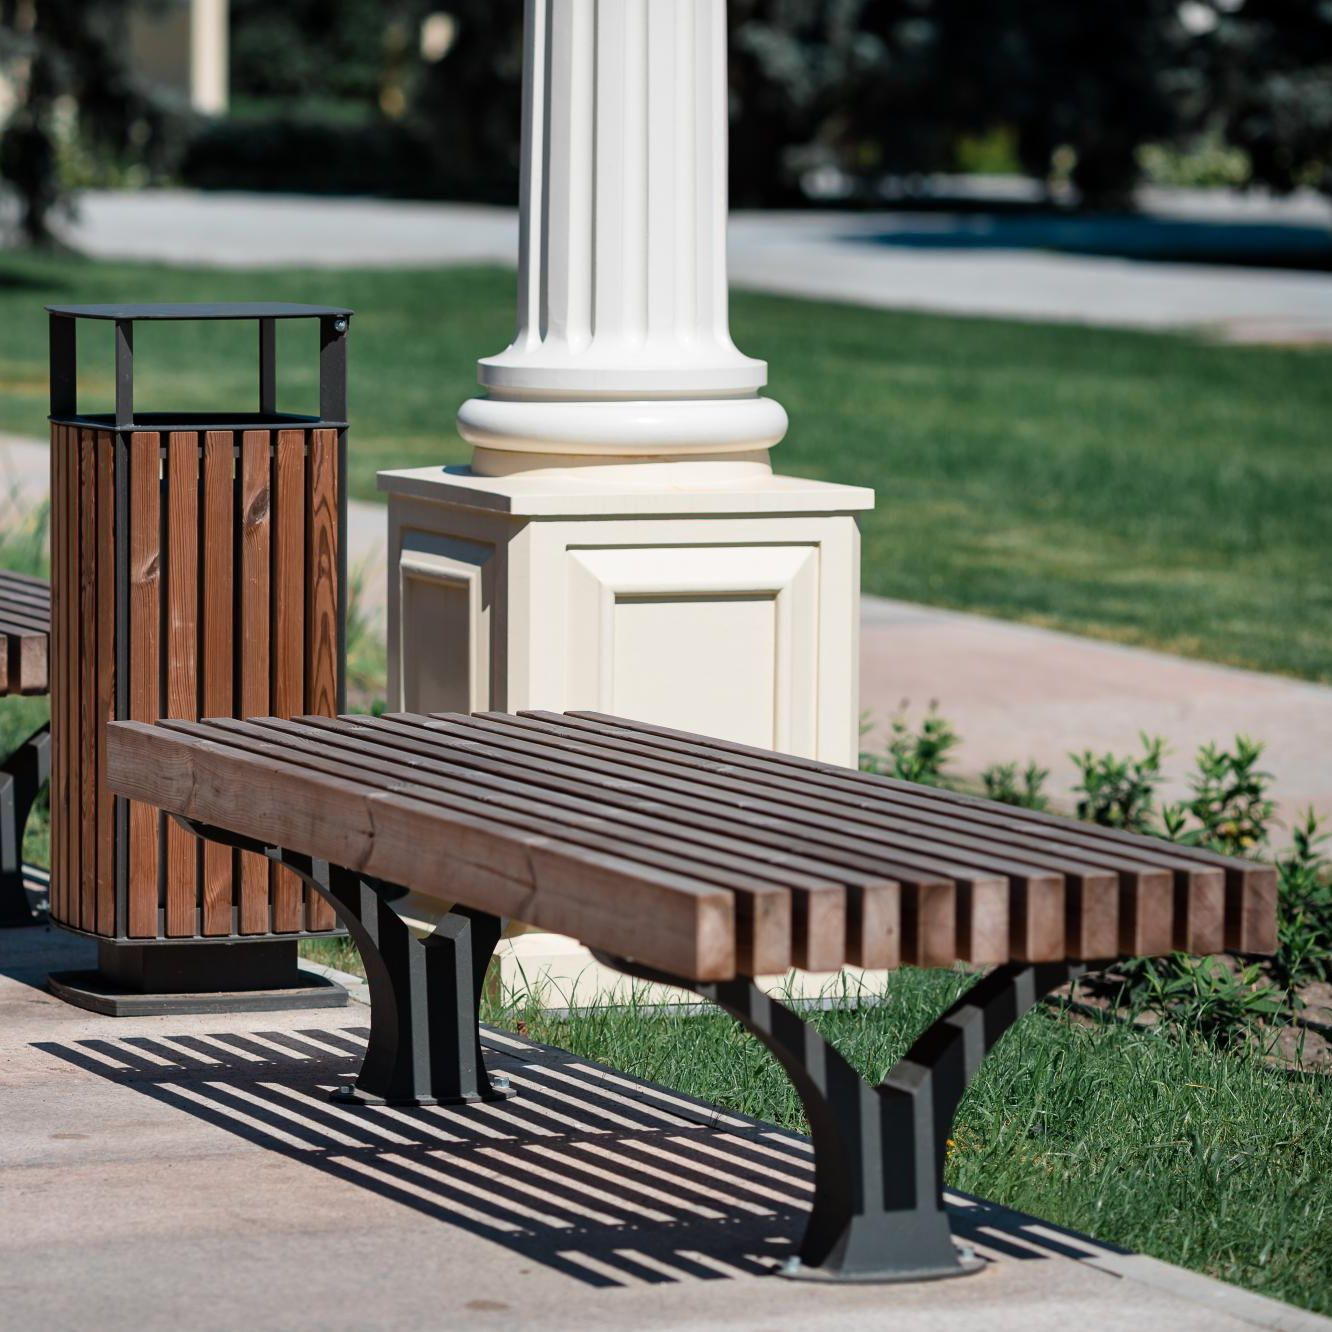 Swell Public Bench Contemporary Galvanized Steel Powder Ocoug Best Dining Table And Chair Ideas Images Ocougorg